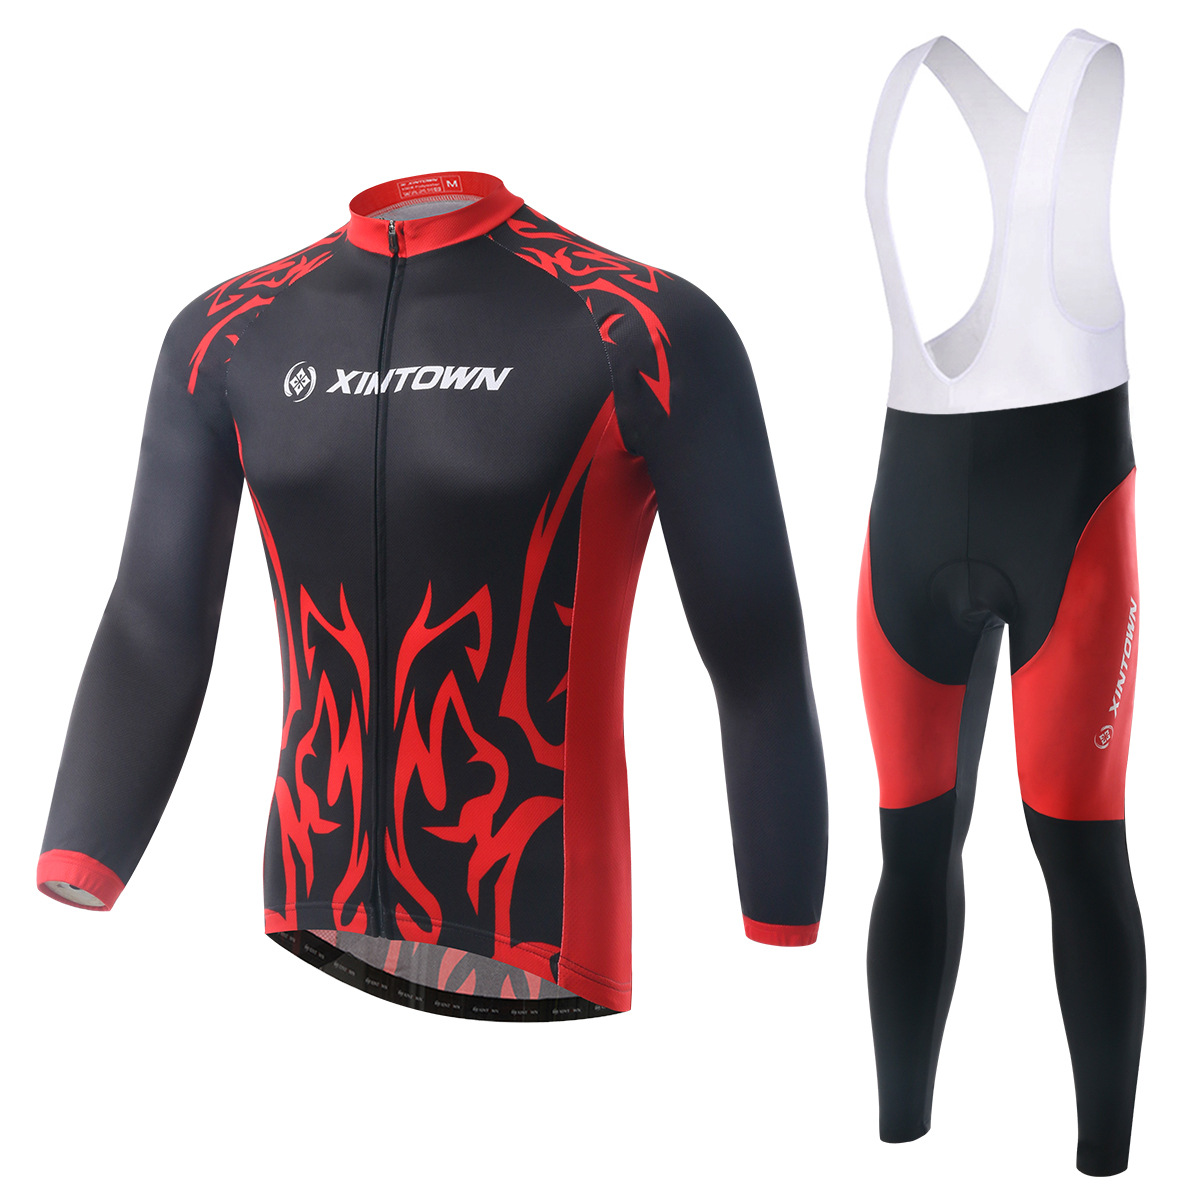 XINTOWN banquet evening bike riding jersey long-sleeved suit wear strap suits fleece warm windbreaker function underwear